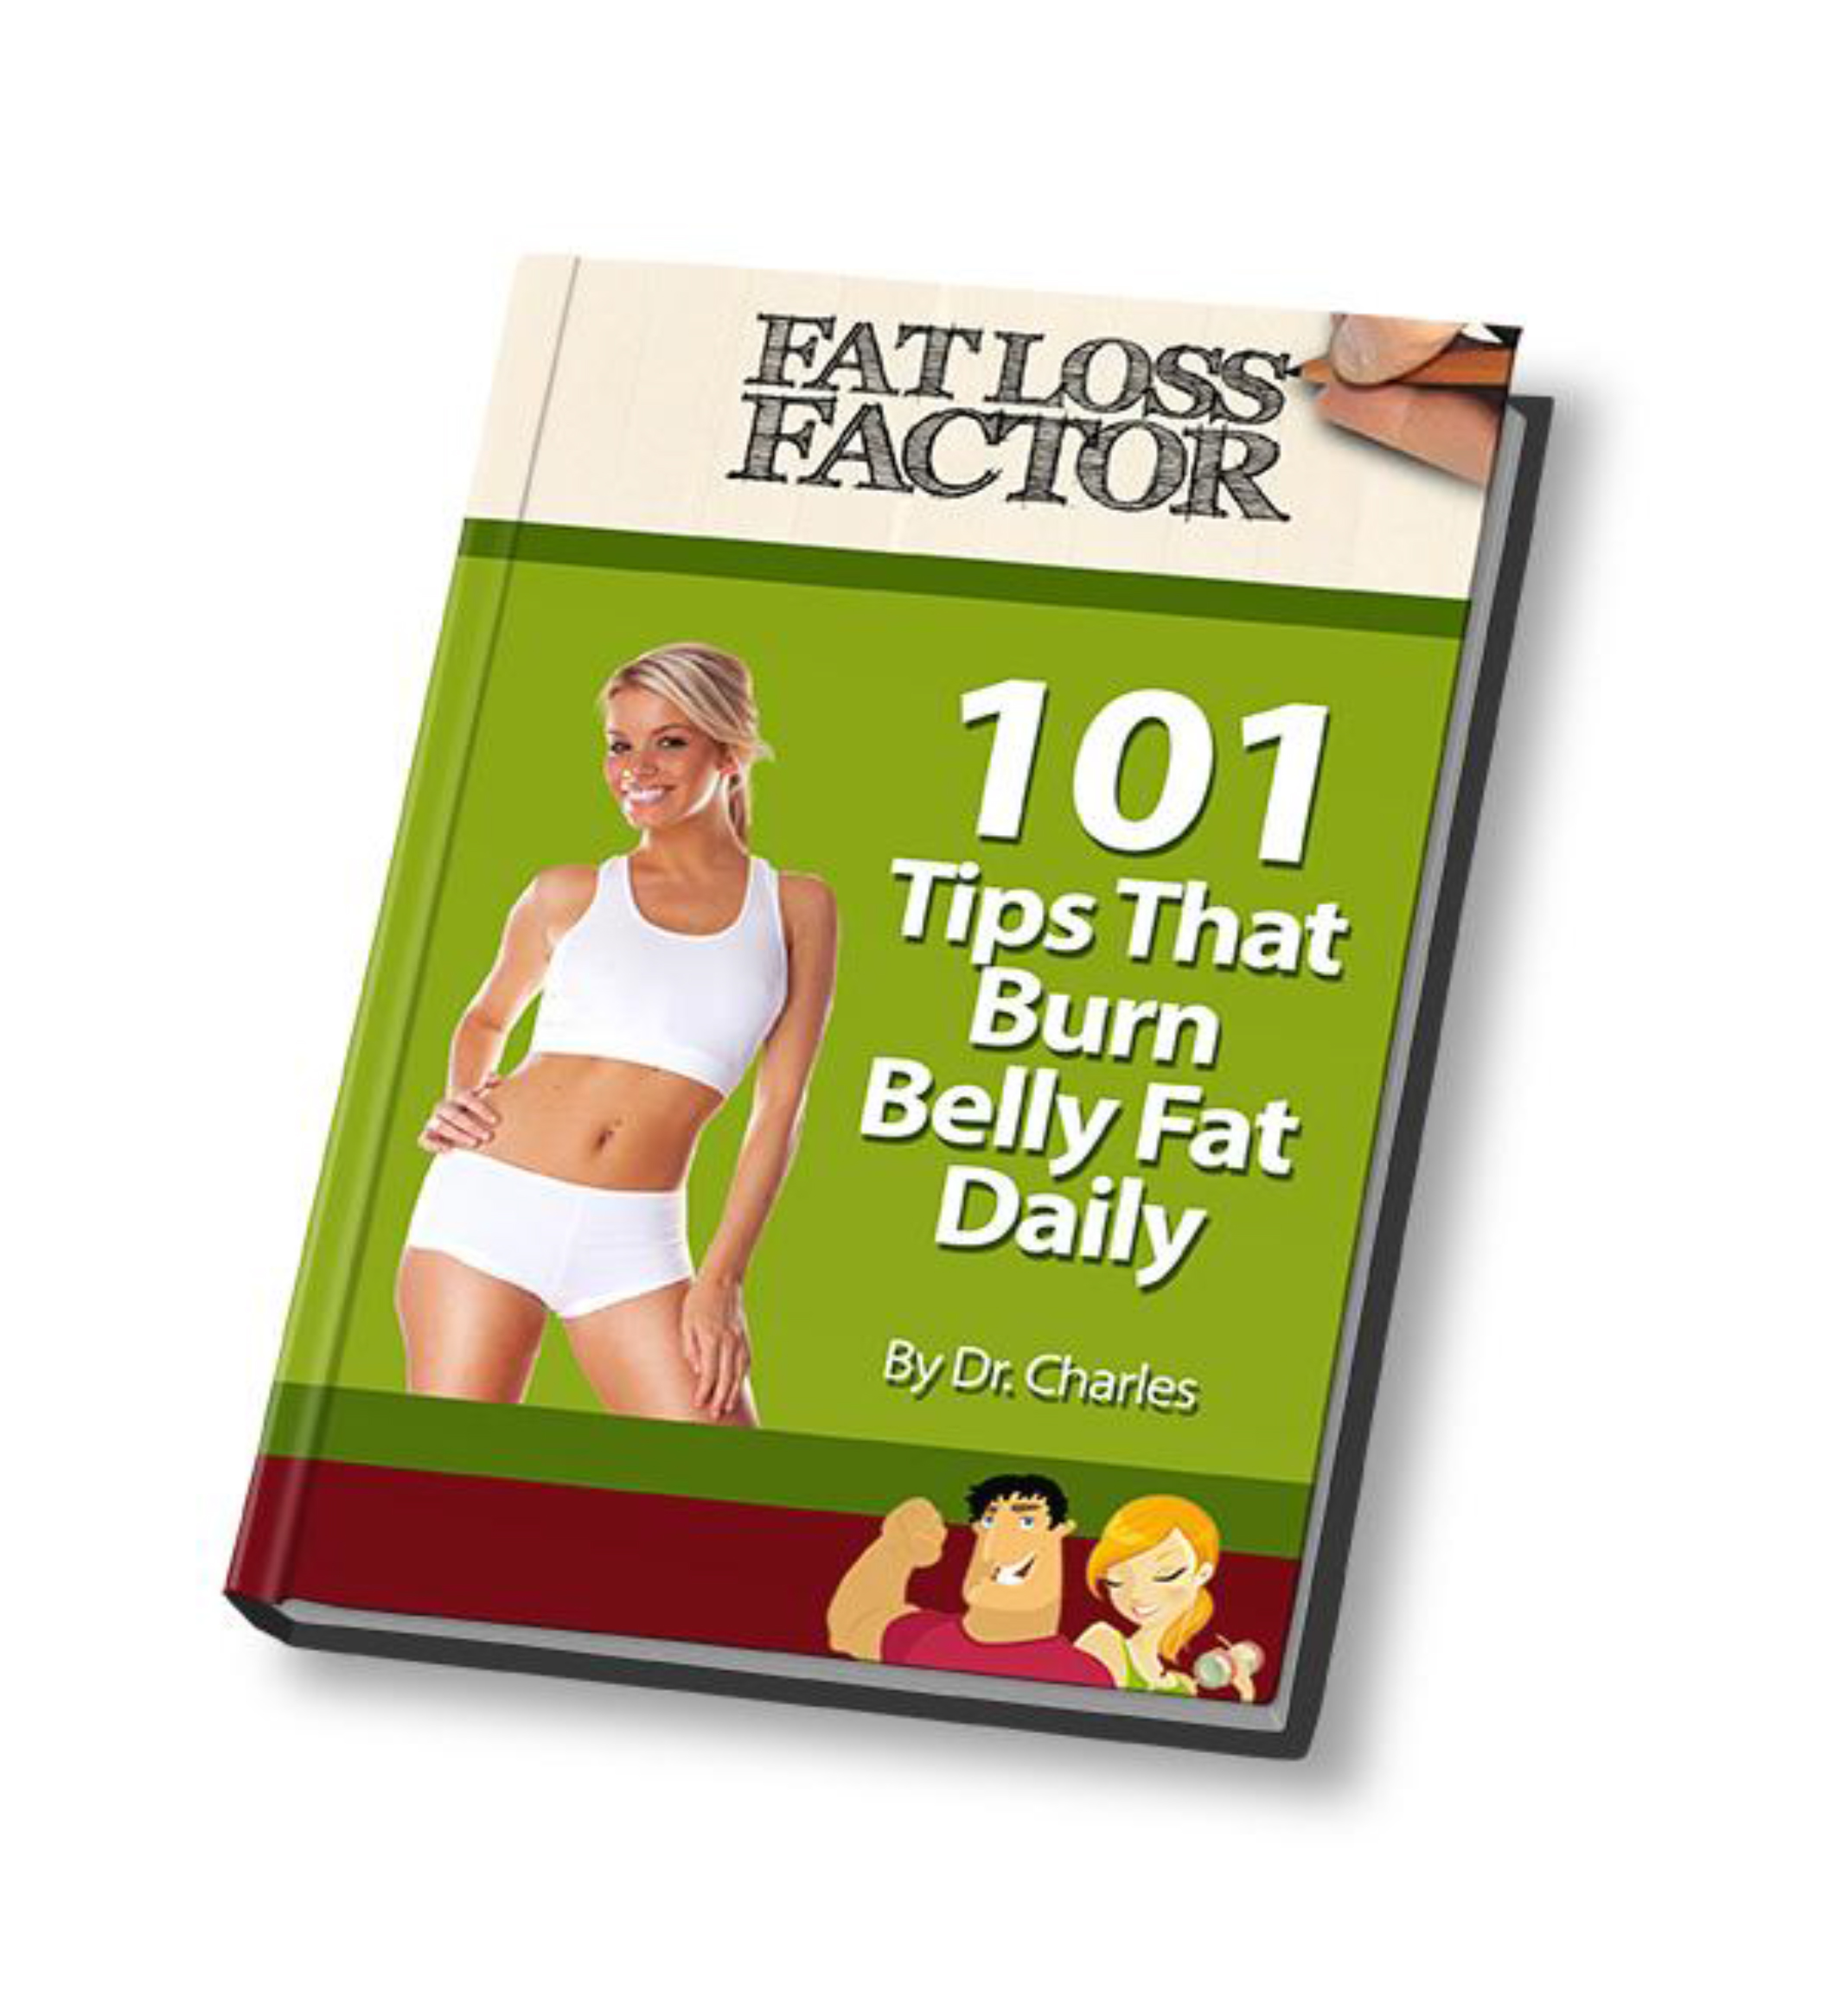 101 Tips That Burn Belly Fat